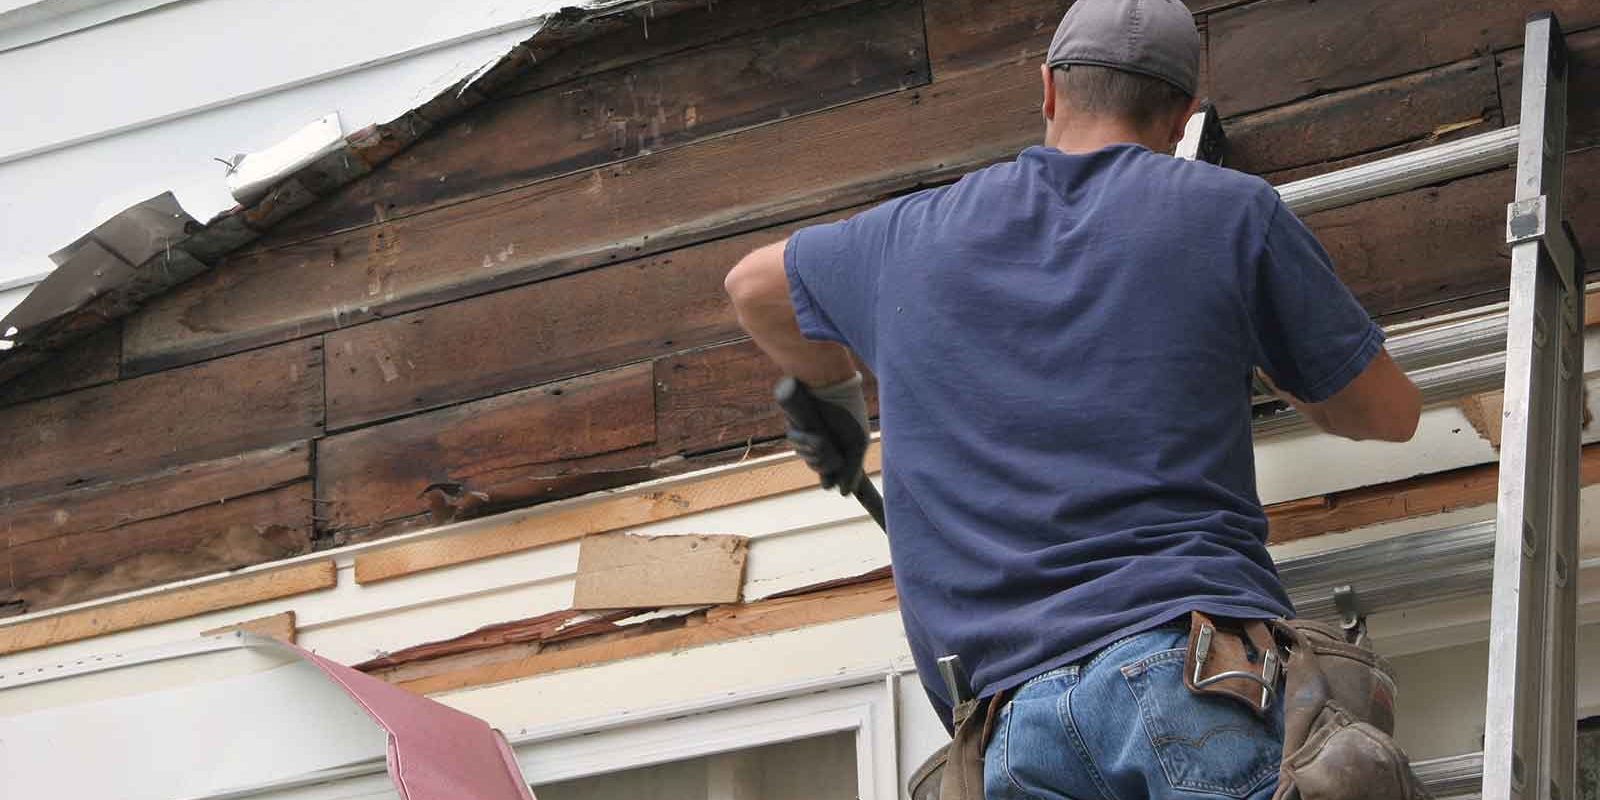 Like a carpenter fixes old or damaged siding on a home, we fix old or damaged websites